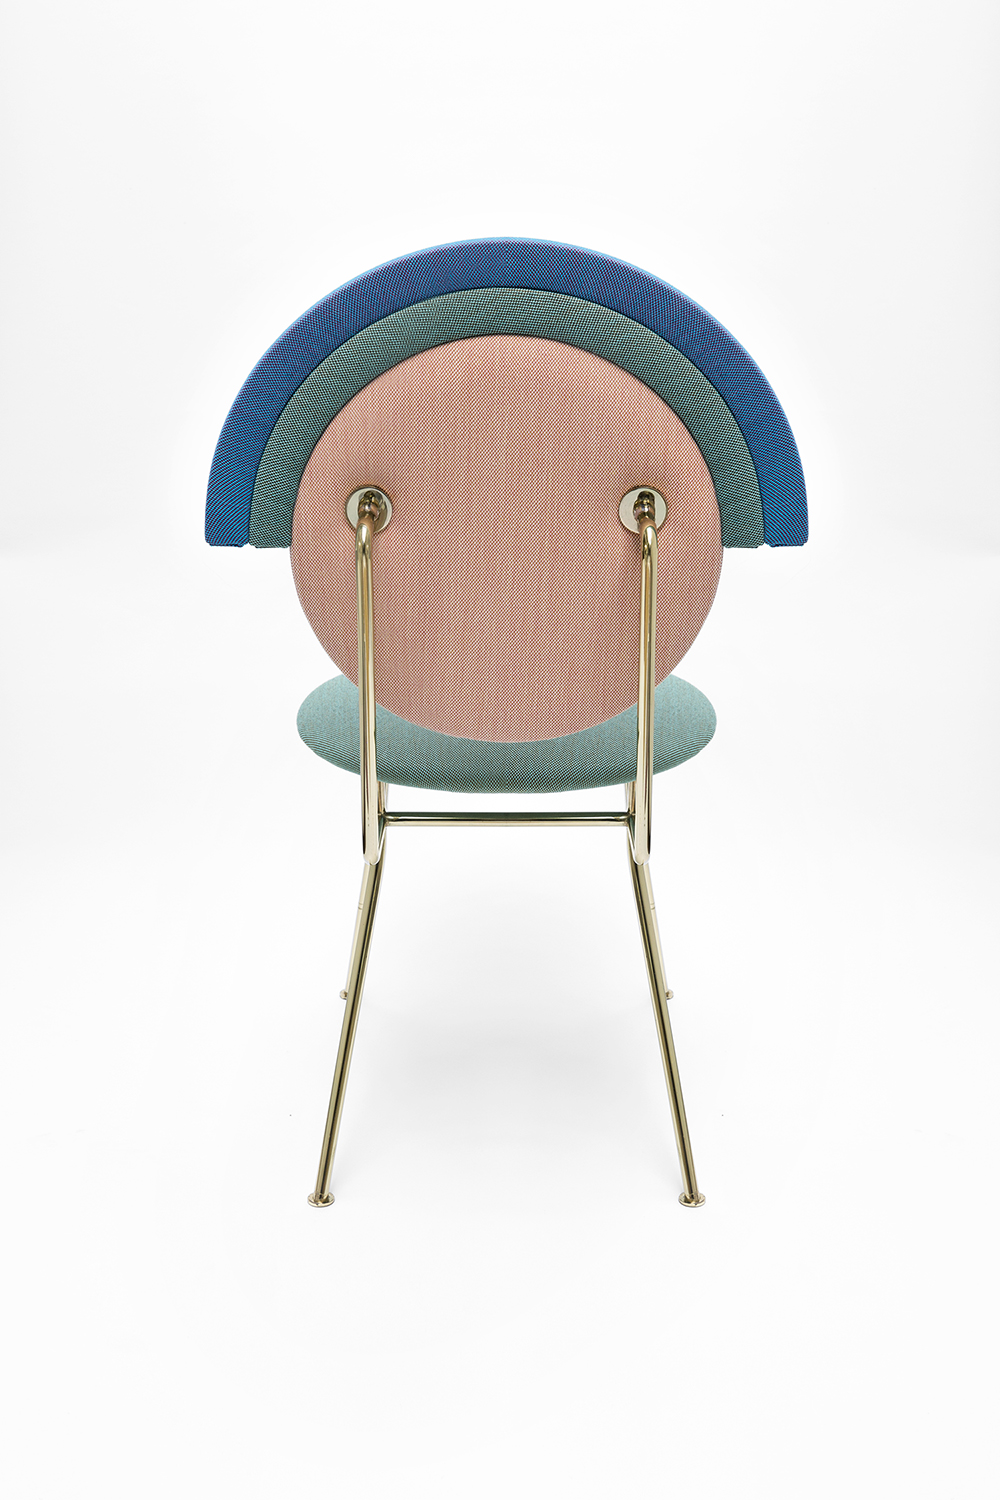 merve kahraman products interiors iris chair back.jpg